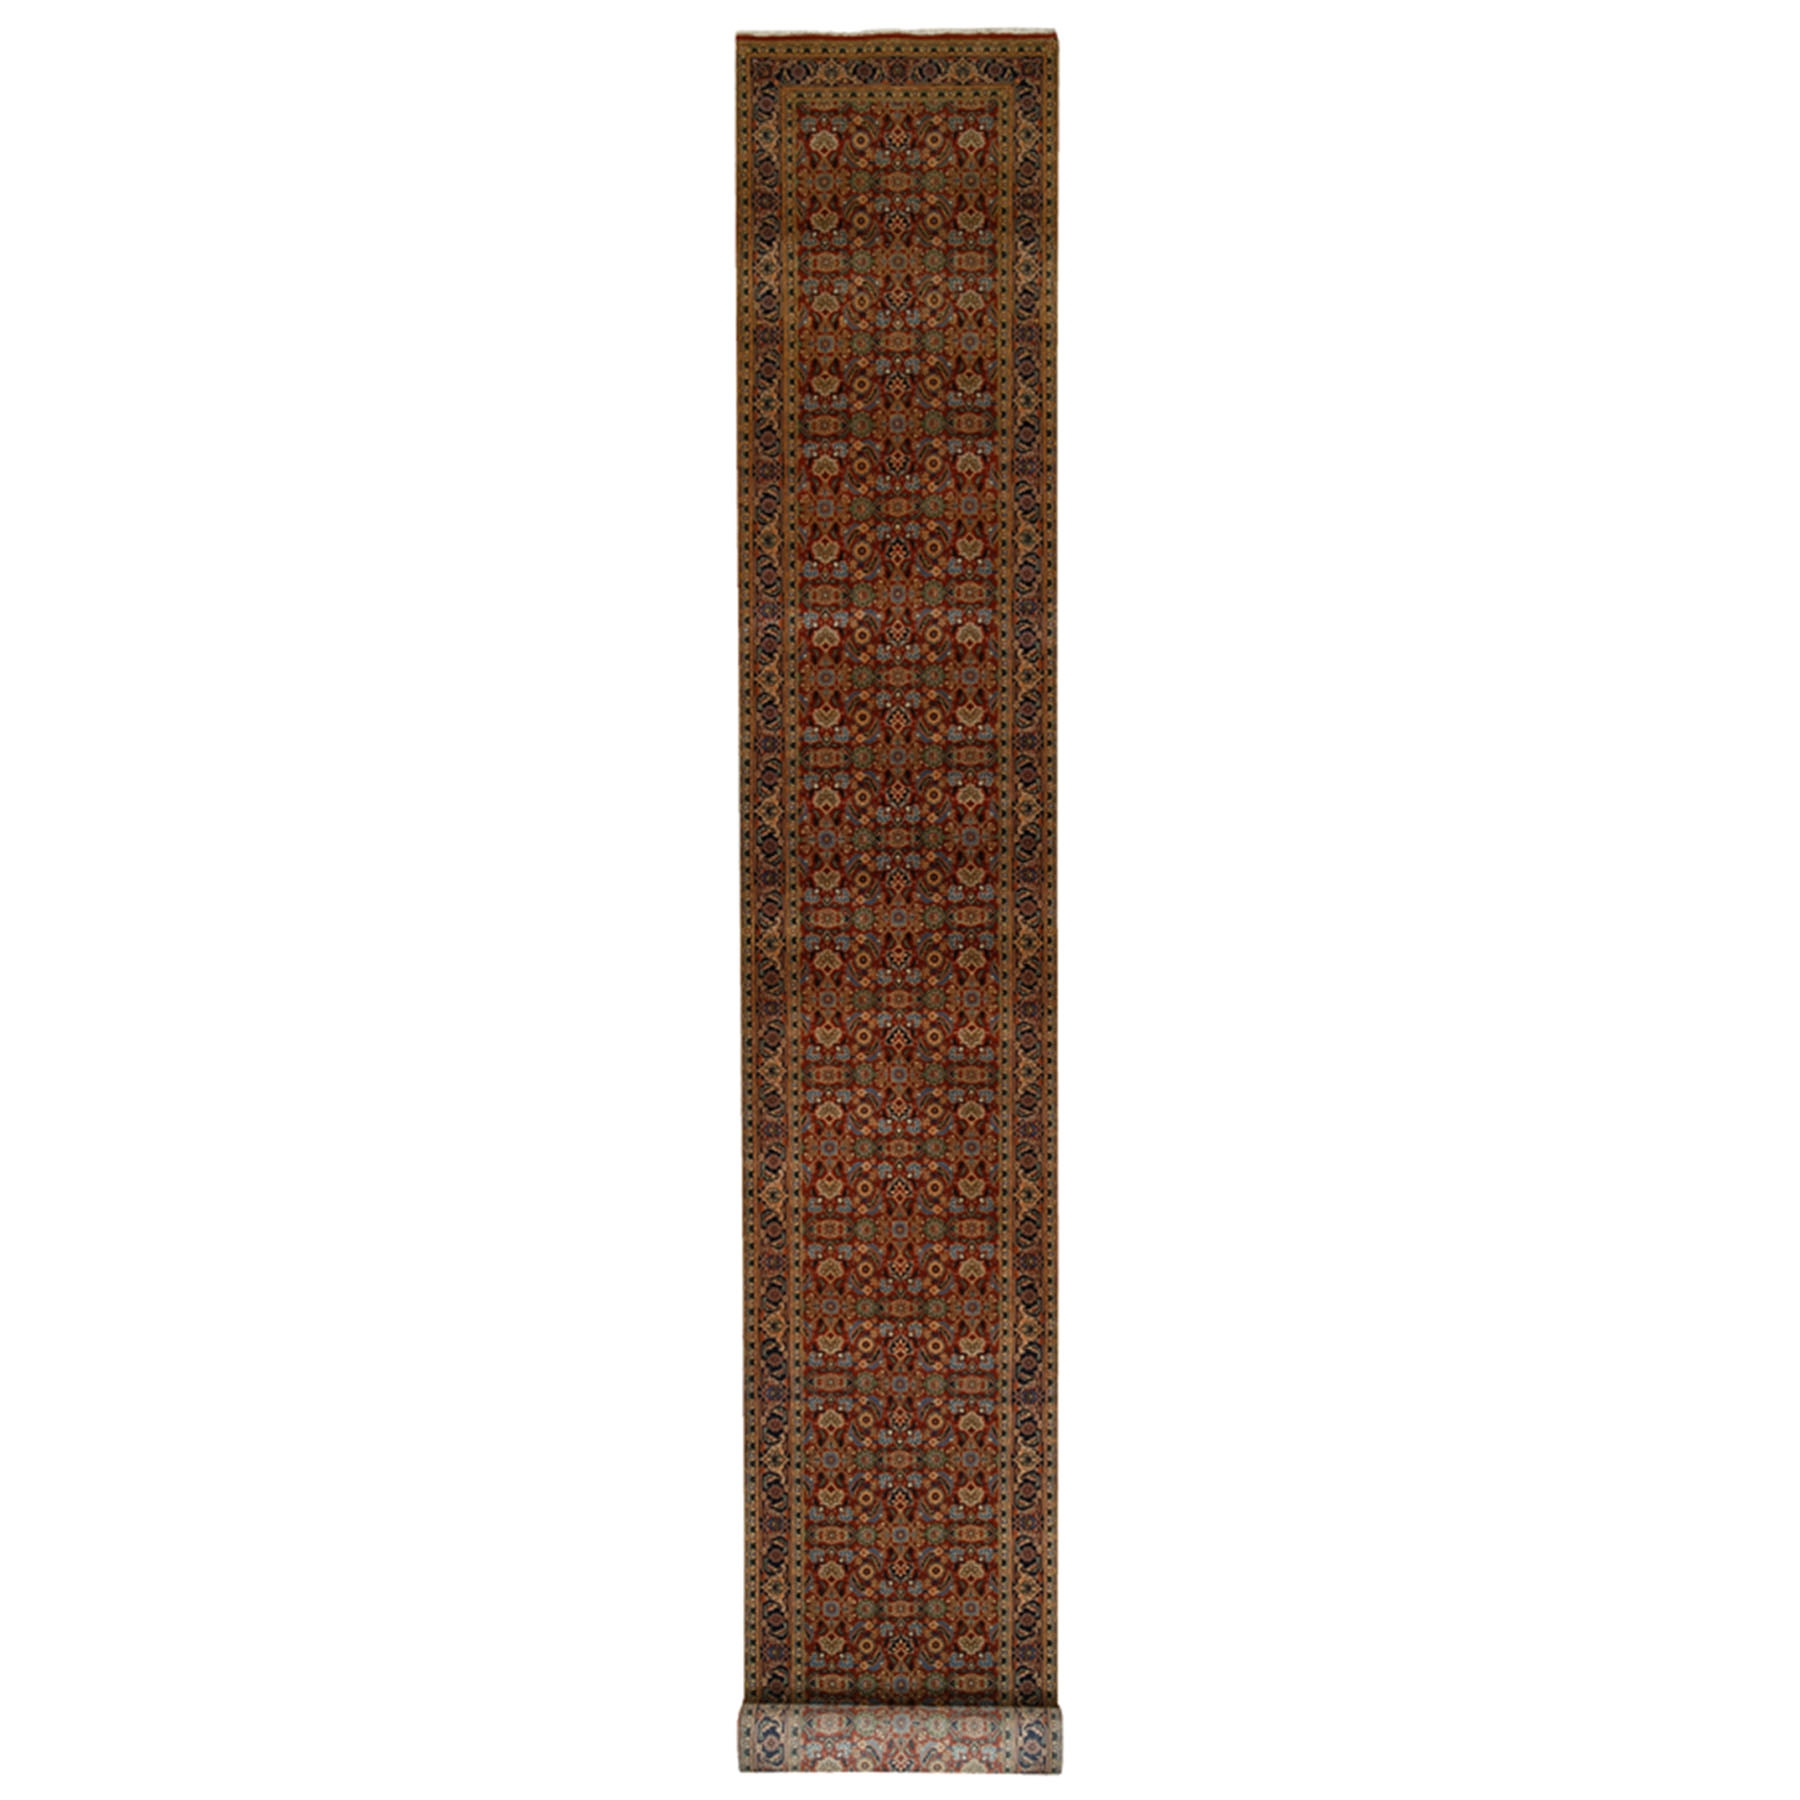 Pirniakan Collection Hand Knotted Red Rug No: 1126024